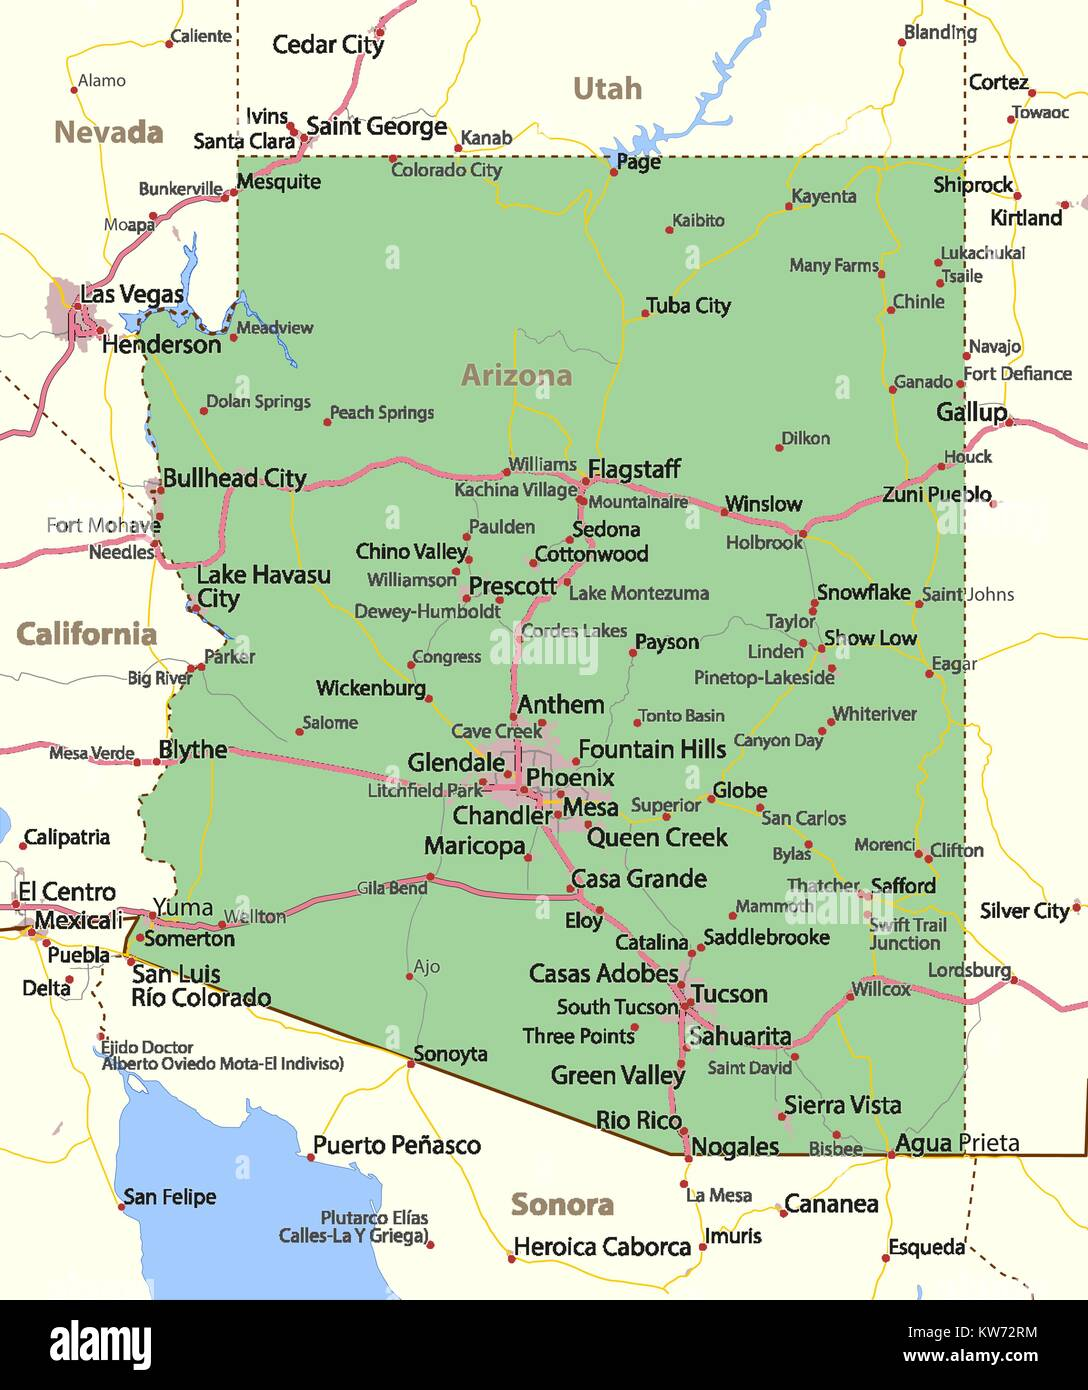 Map Of Eloy Arizona.Map Of Arizona Shows Country Borders Urban Areas Place Names